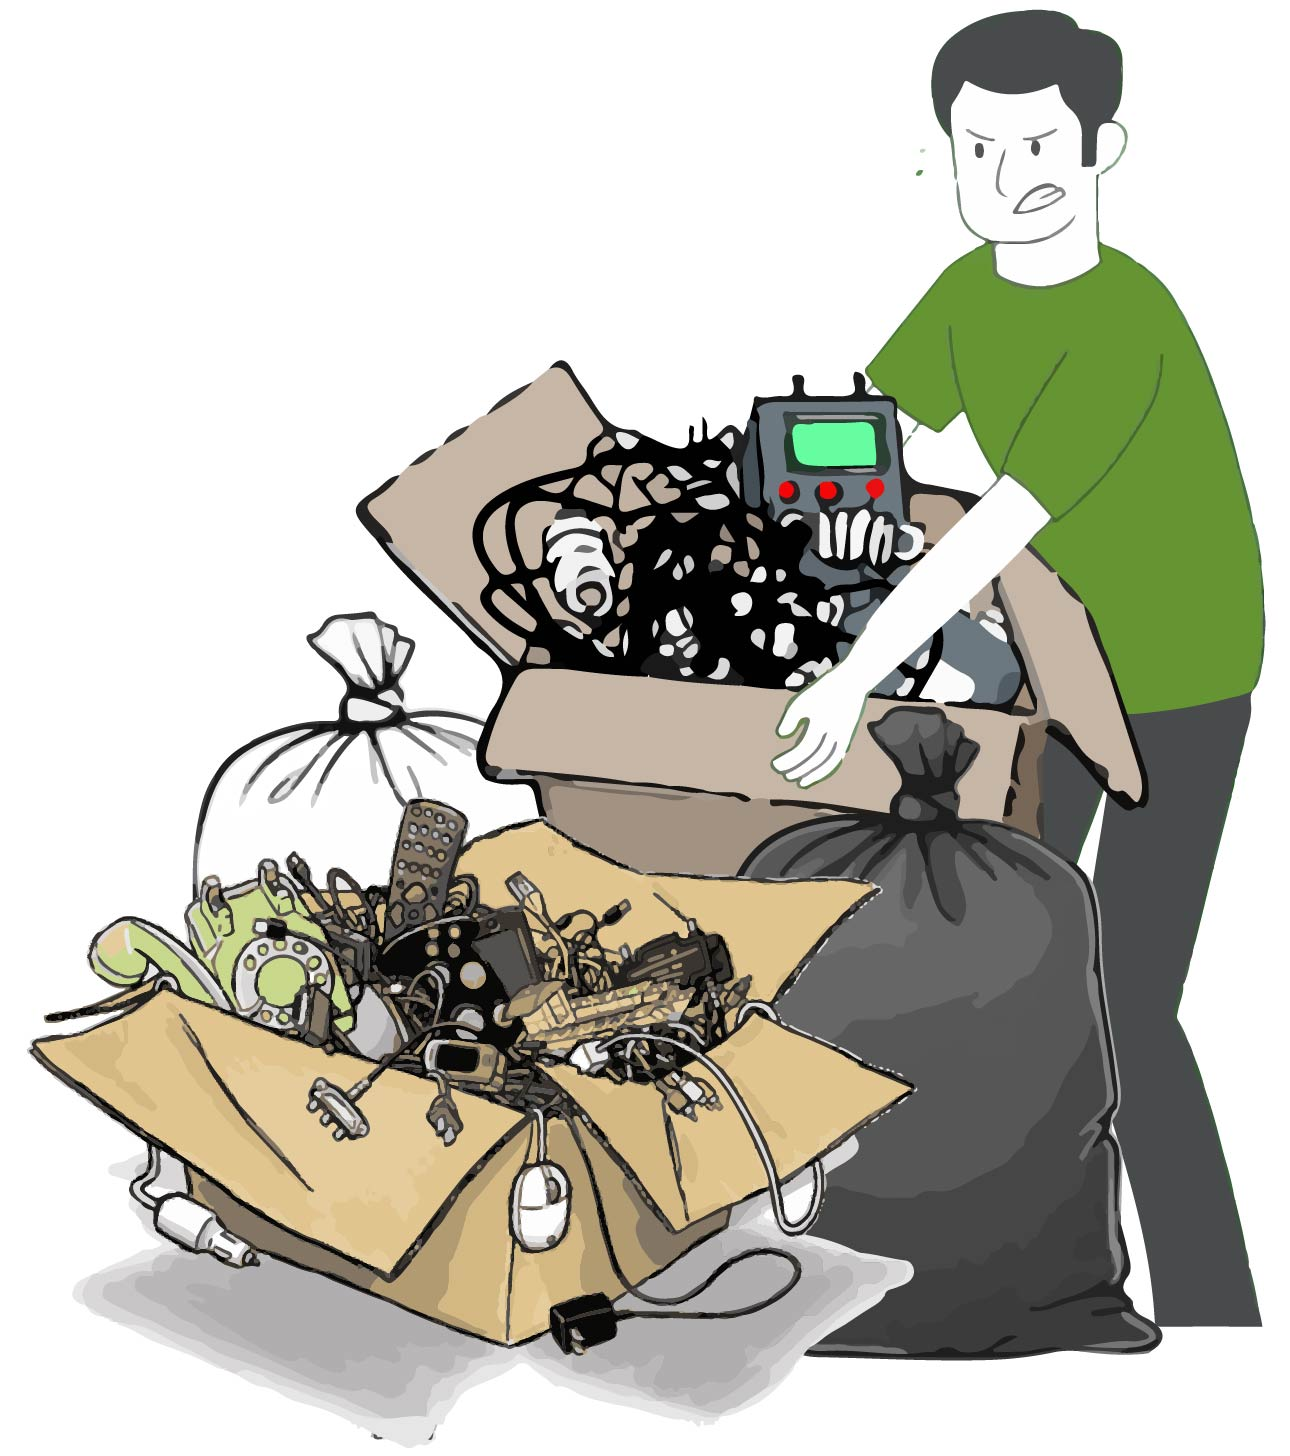 Affordable Junk Removal Services in San Bernardino, CA